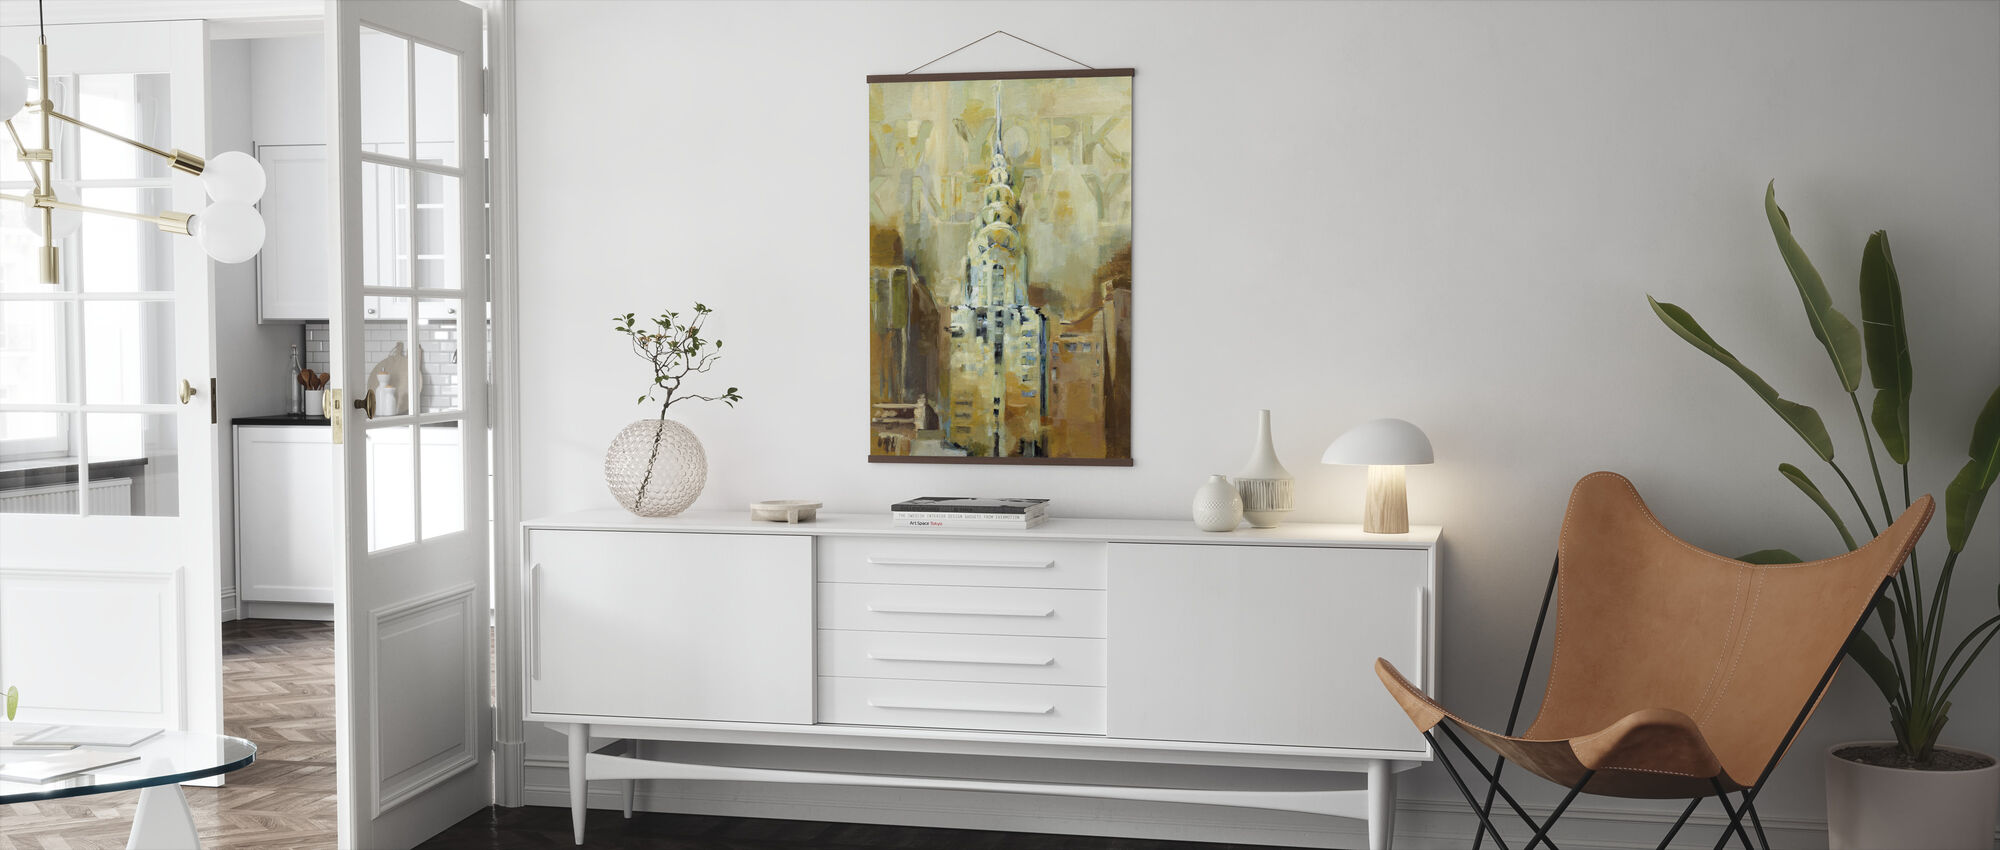 The Chrysler Building - Poster - Living Room